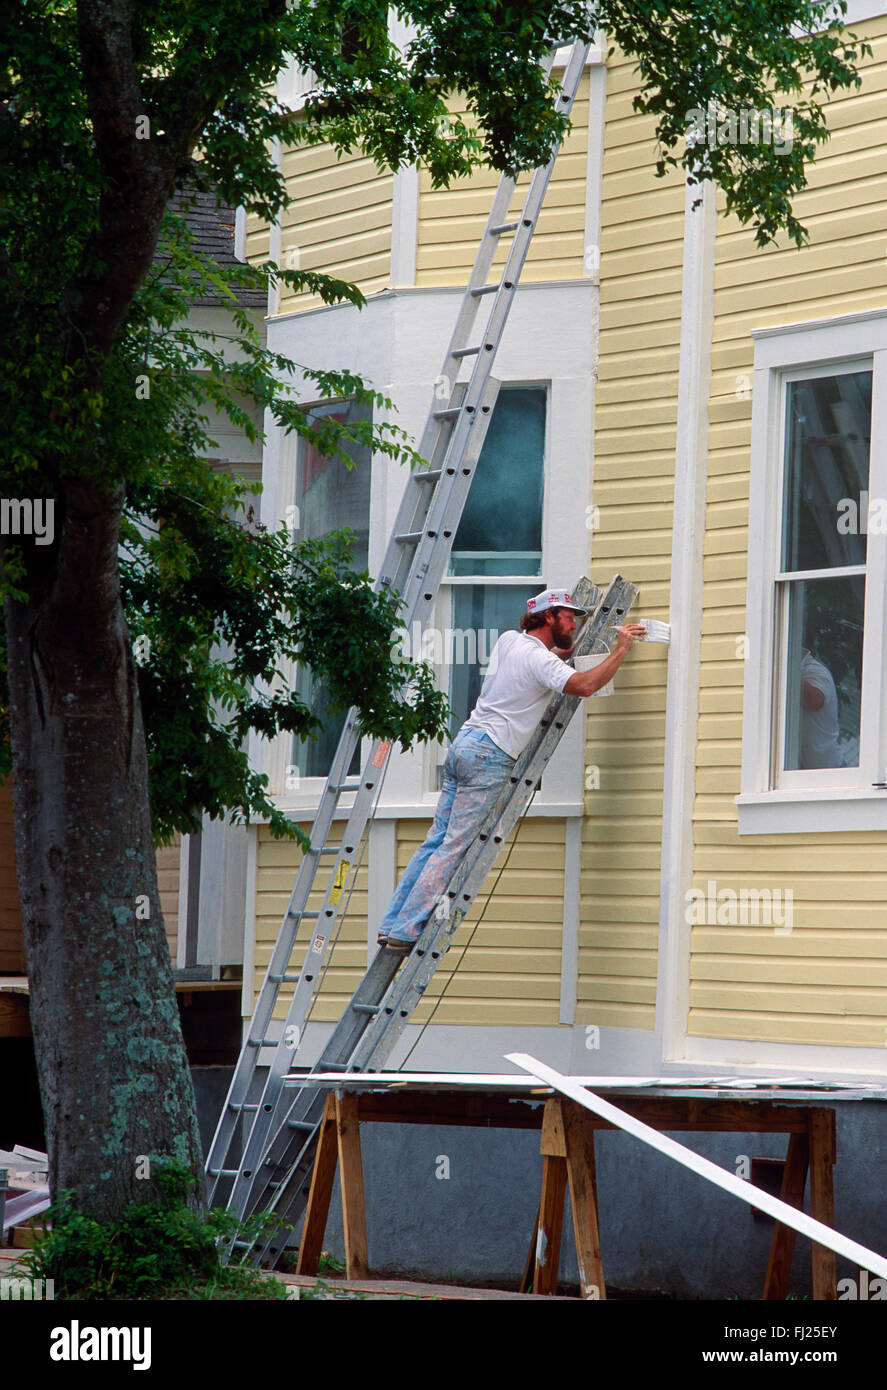 Professional painter on ladder painting historical house, Charleston, South Carolina, USA - Stock Image